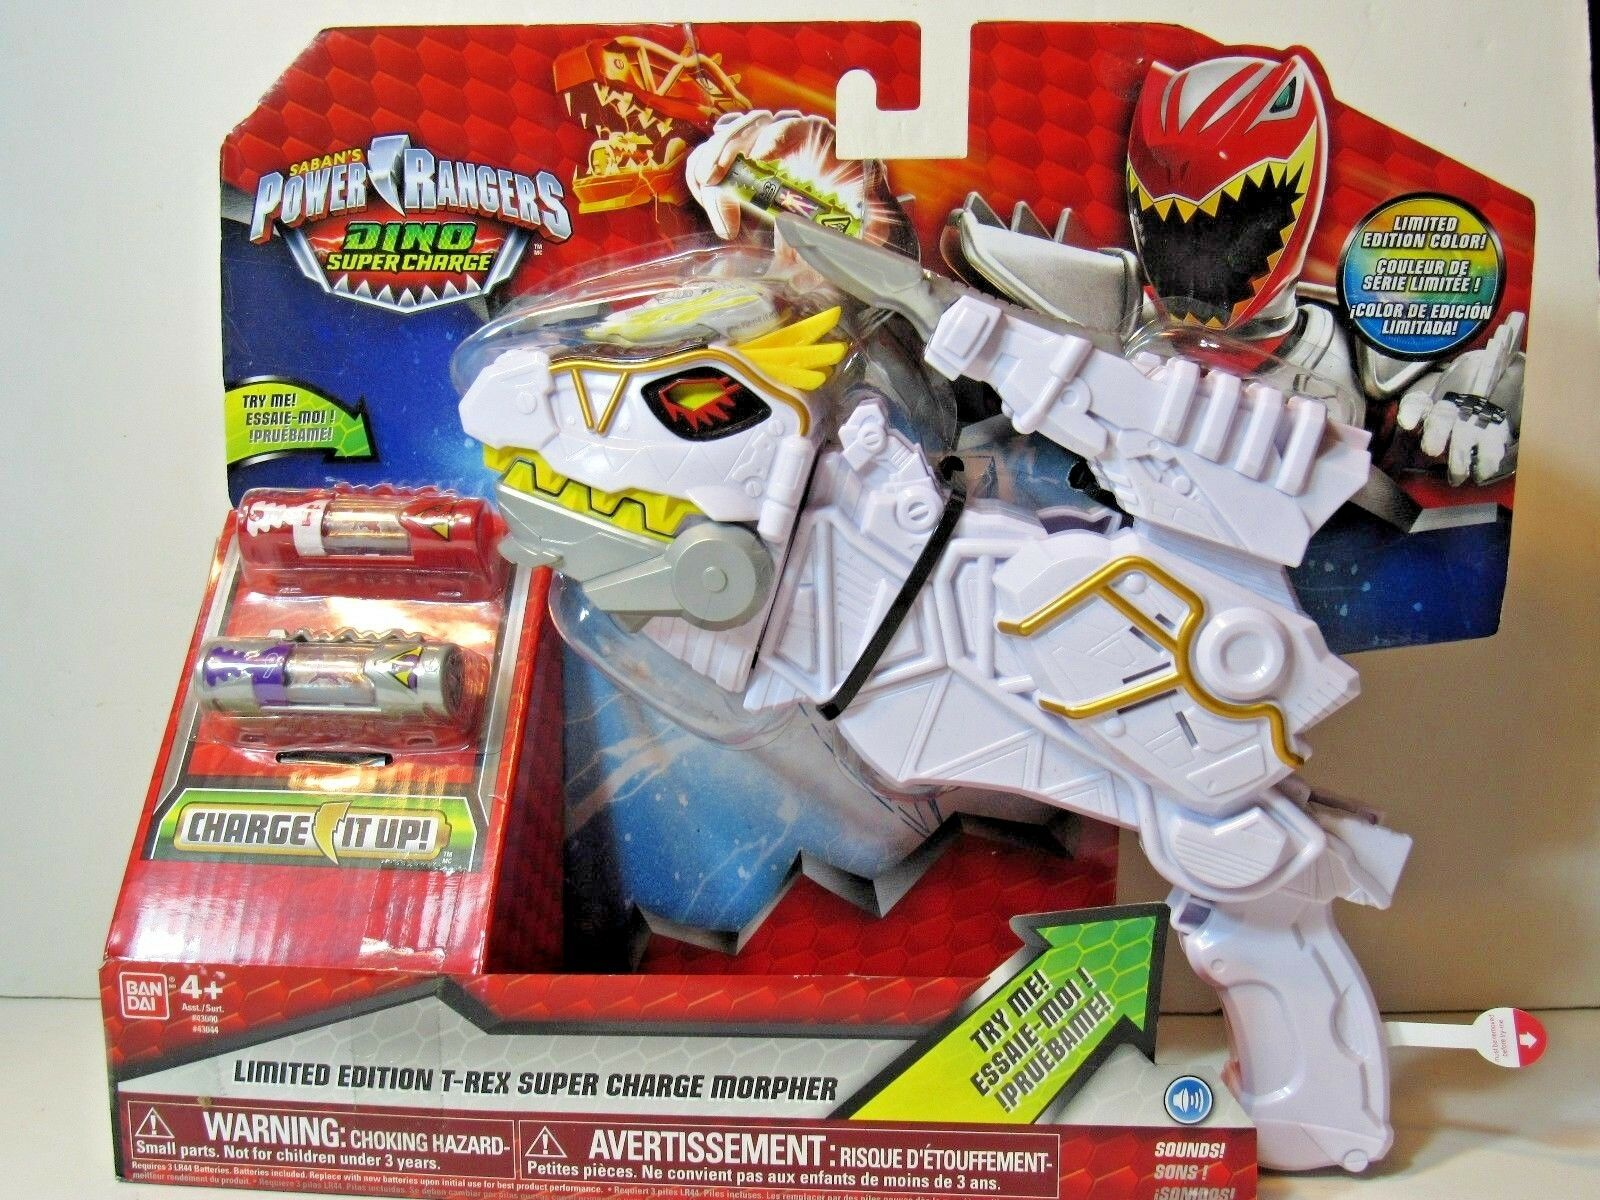 Power Rangers Dino Supercharge Limited White T-Rex Super Charge Morpher Morpher Morpher MISP 19a00e